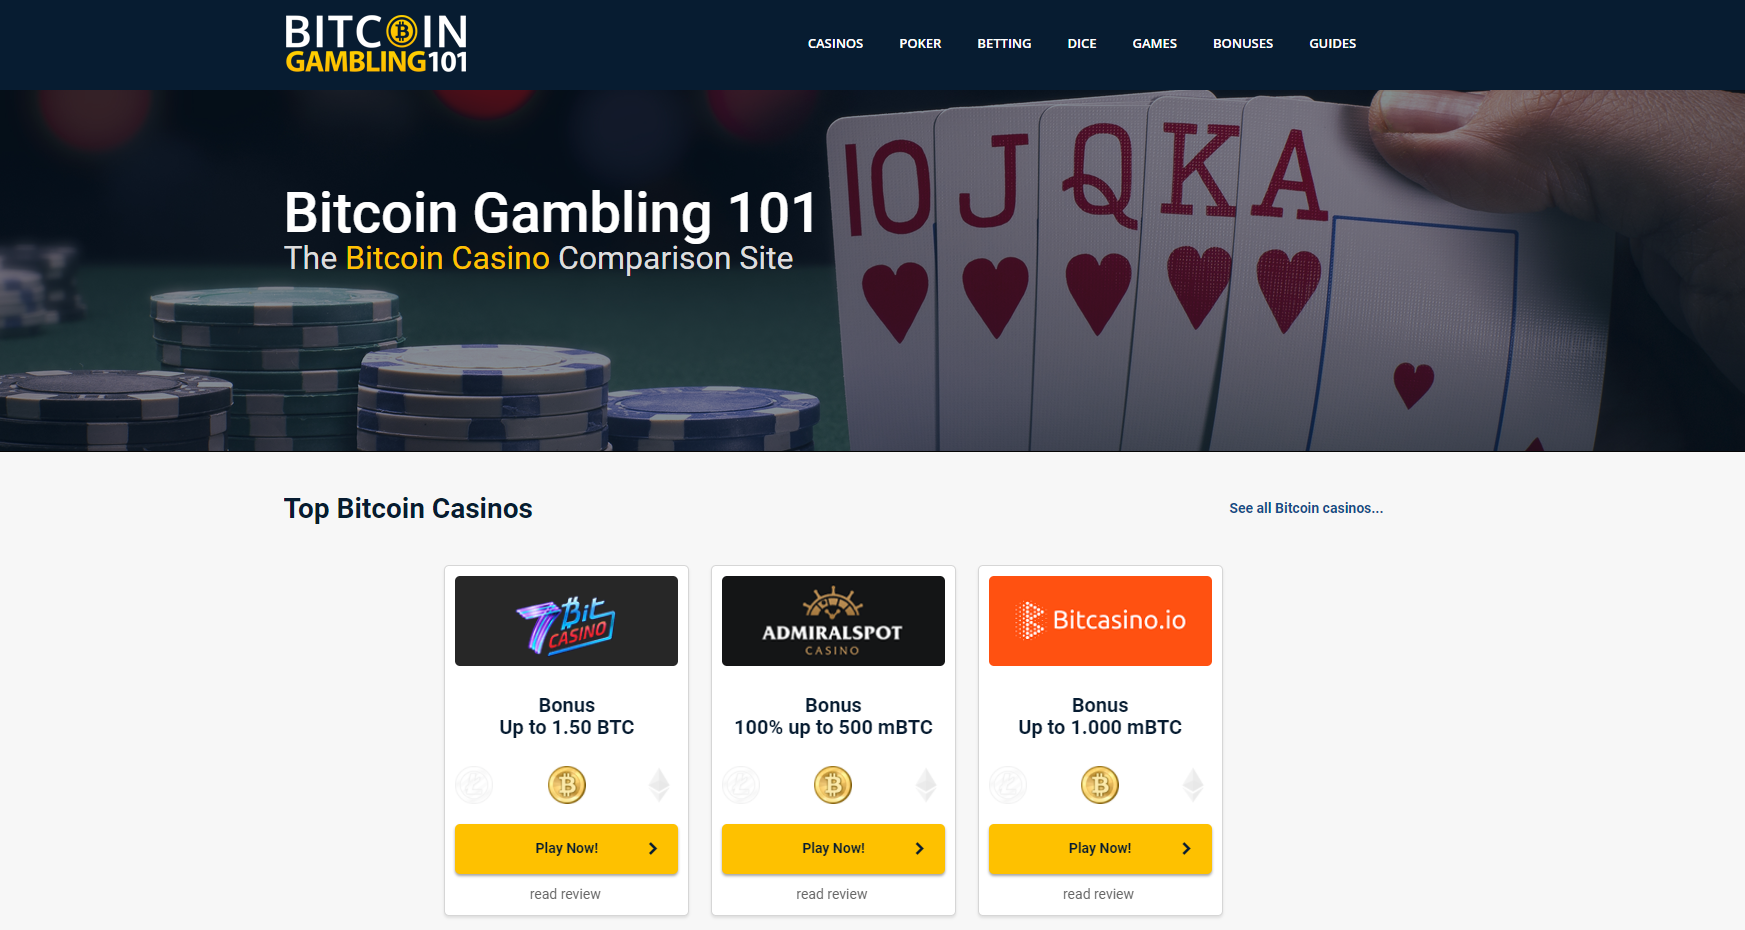 Bitcoin Gambling 101 screenshot